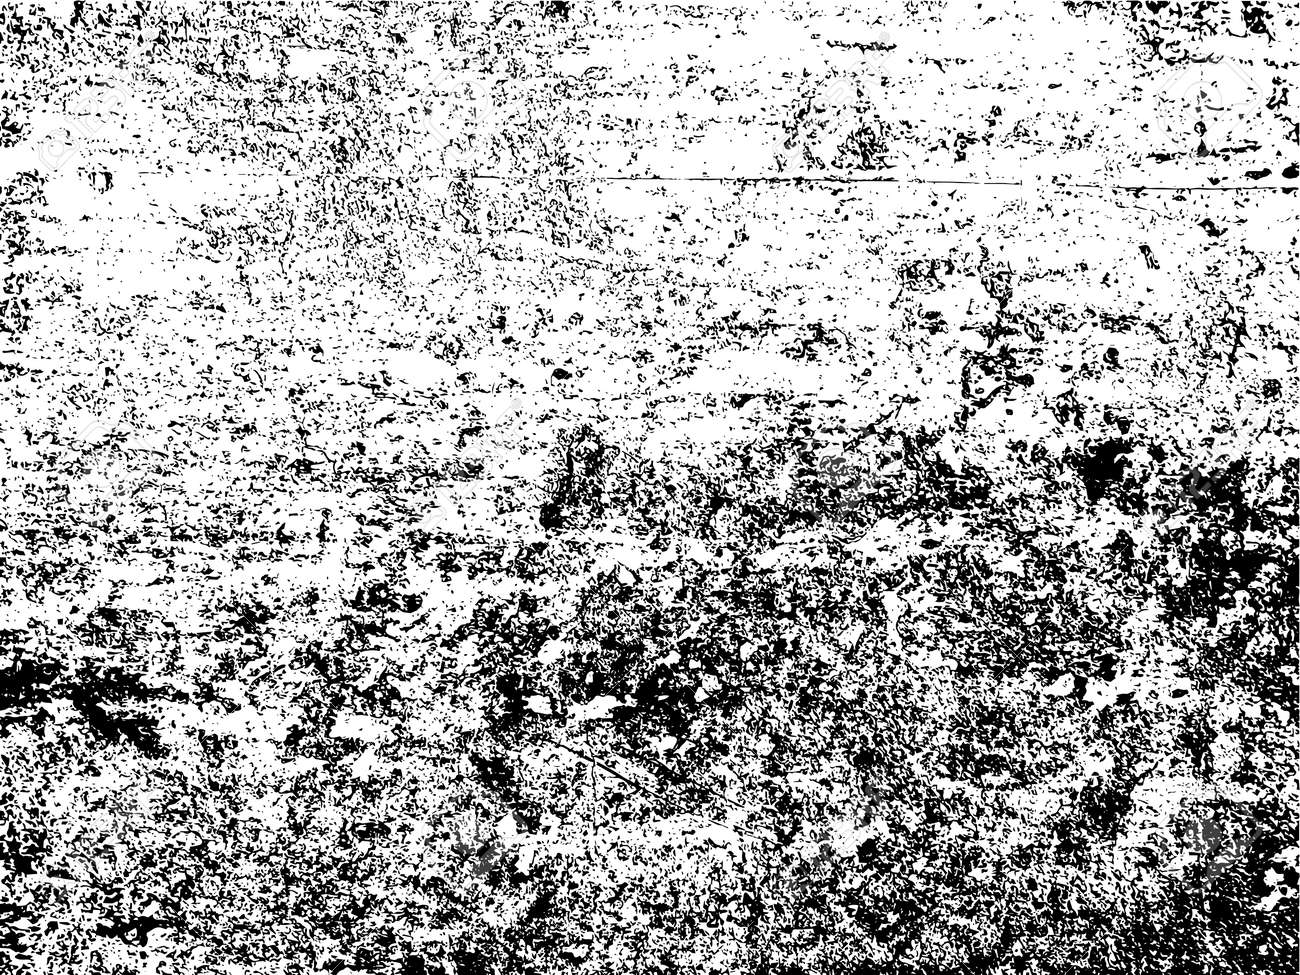 Concrete texture. Cement overlay black and white texture. - 169850372